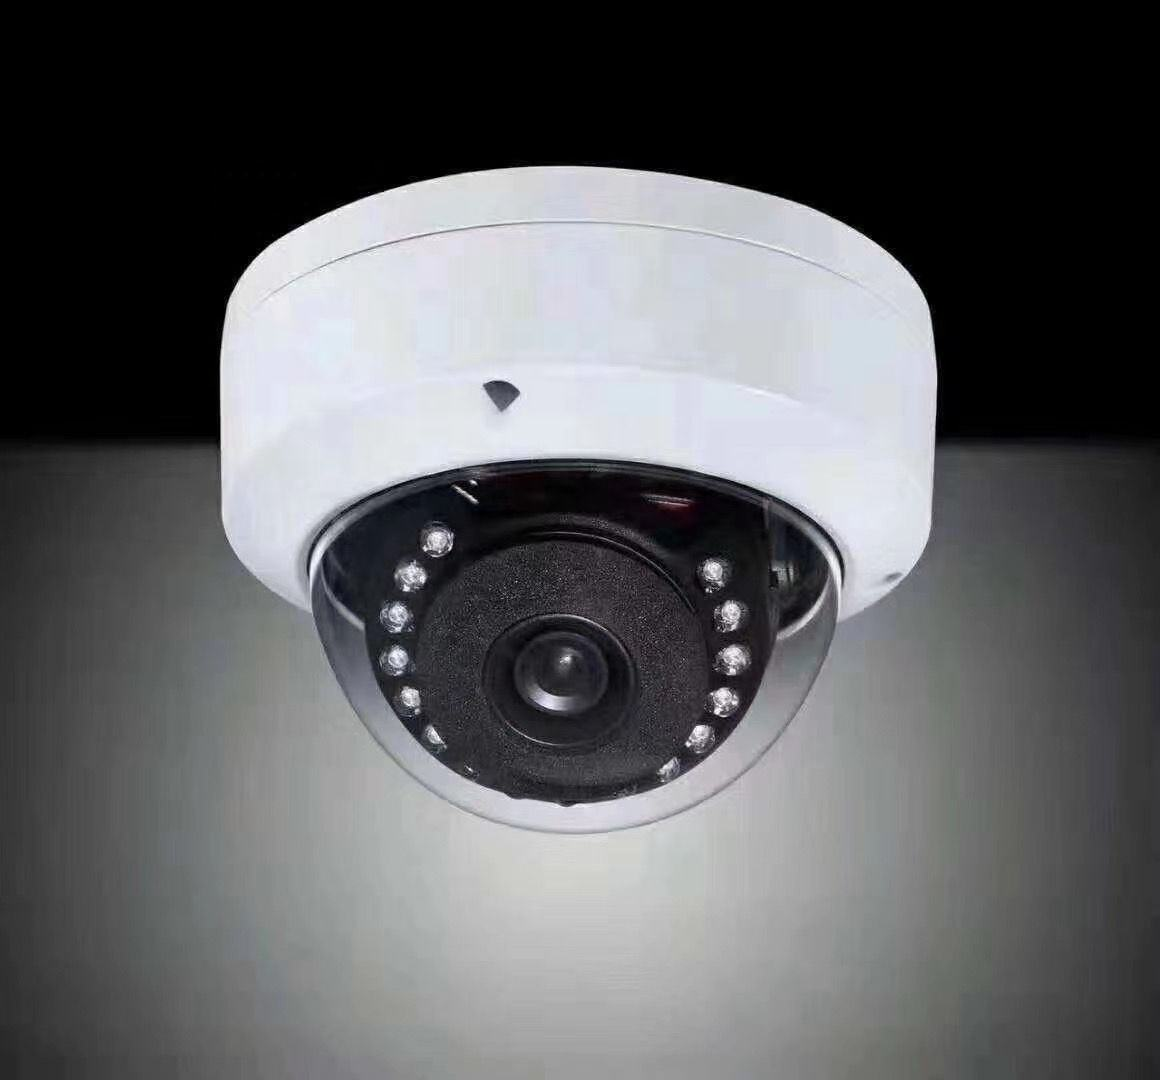 PoE Vandal-proof Network Mini Dome IP Security system Camera 4MP Fixed Lens Day and Night ONVIF